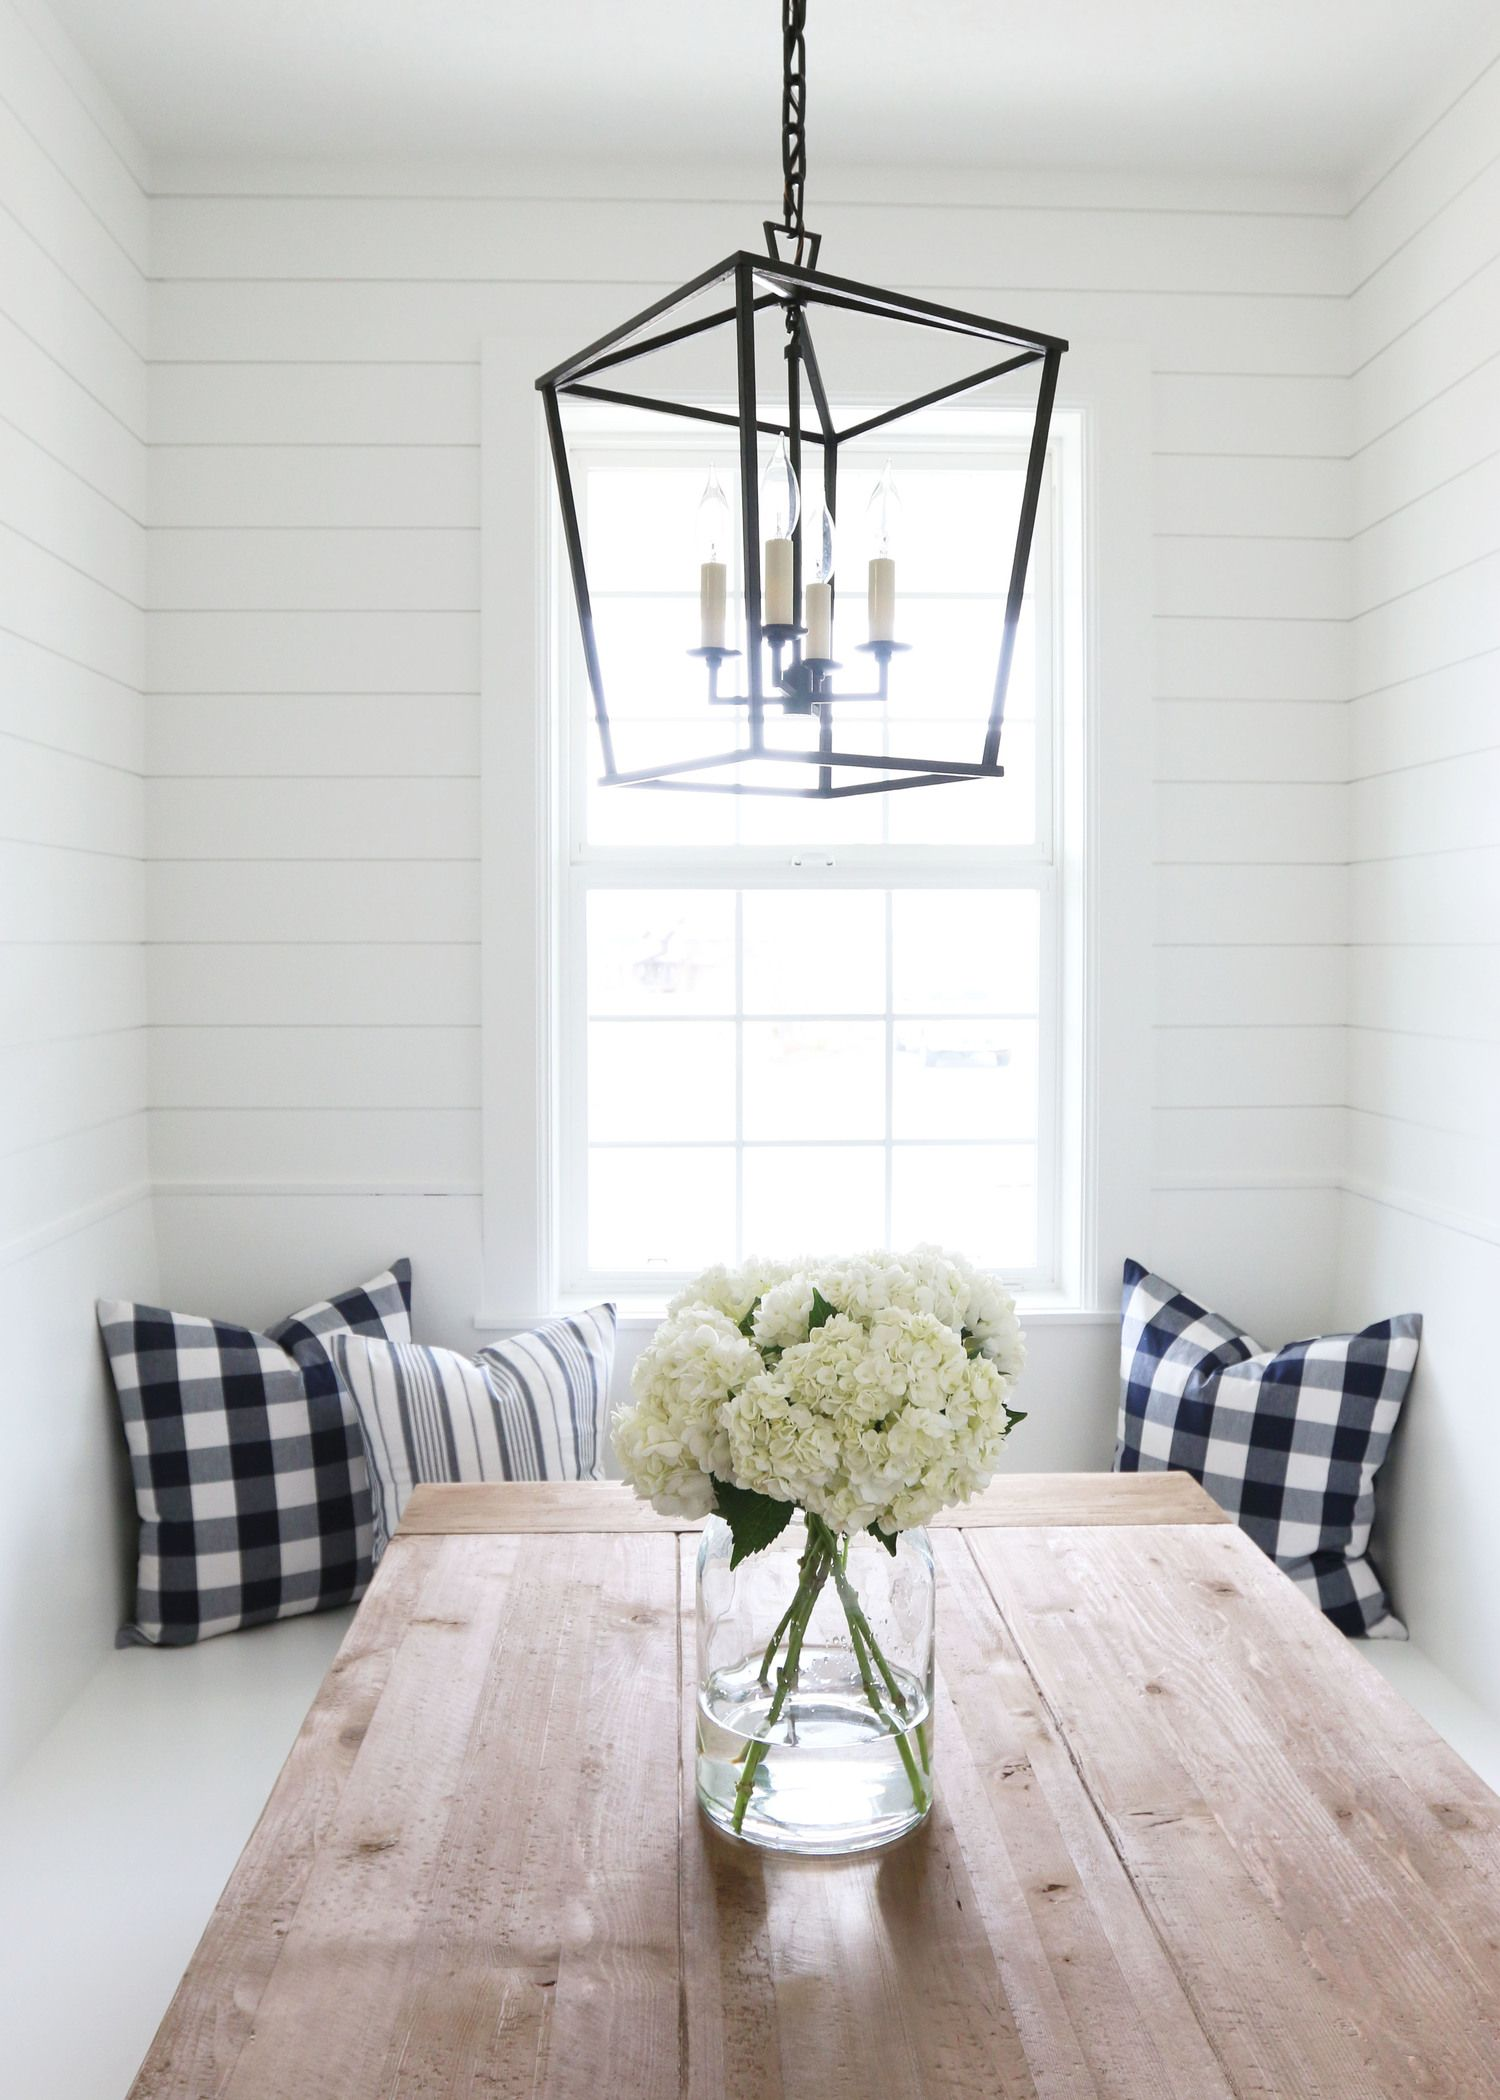 Kitchen Table Light Fixtures Stainless Steel Utensil Set Farmhouse Nook Kitchens Darlana Lantern By Visual Comfort And Co Available At Mayer Lighting Showroom Www Mayerlighting Com